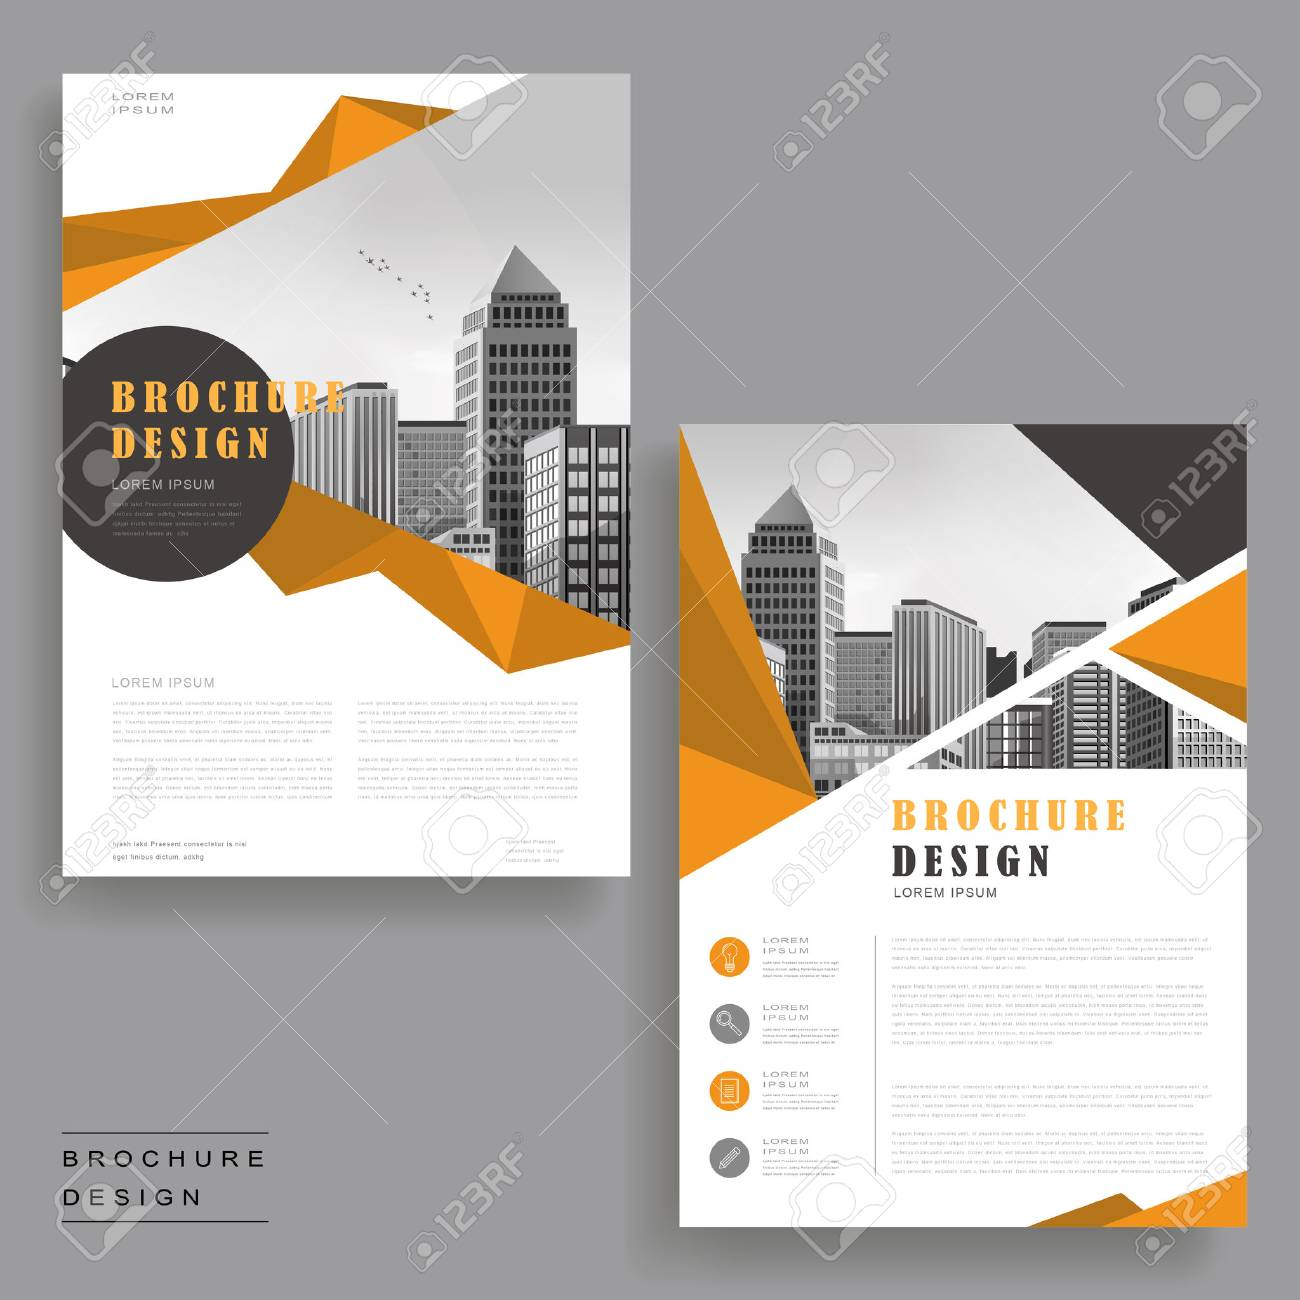 simplicity brochure template design with urban landscape and polygon elements stock vector 61098577 - Settlement Brochure Template